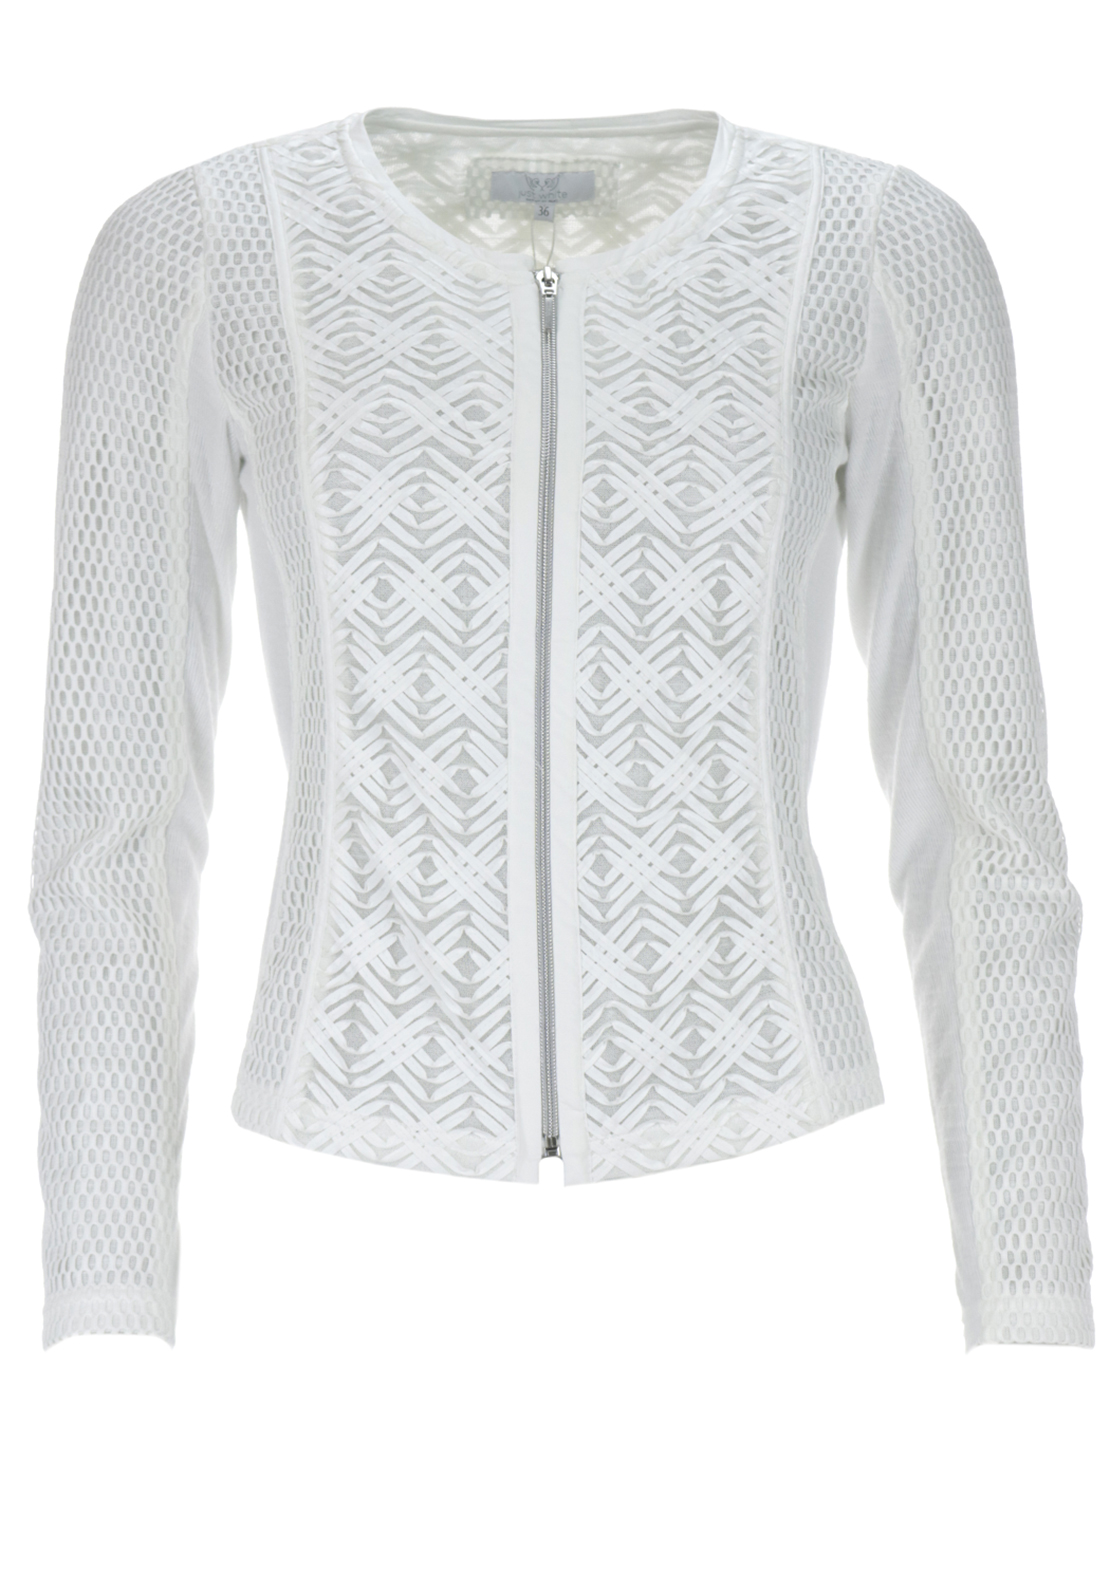 Just White PU and Mesh Trim Cardigan, Off White